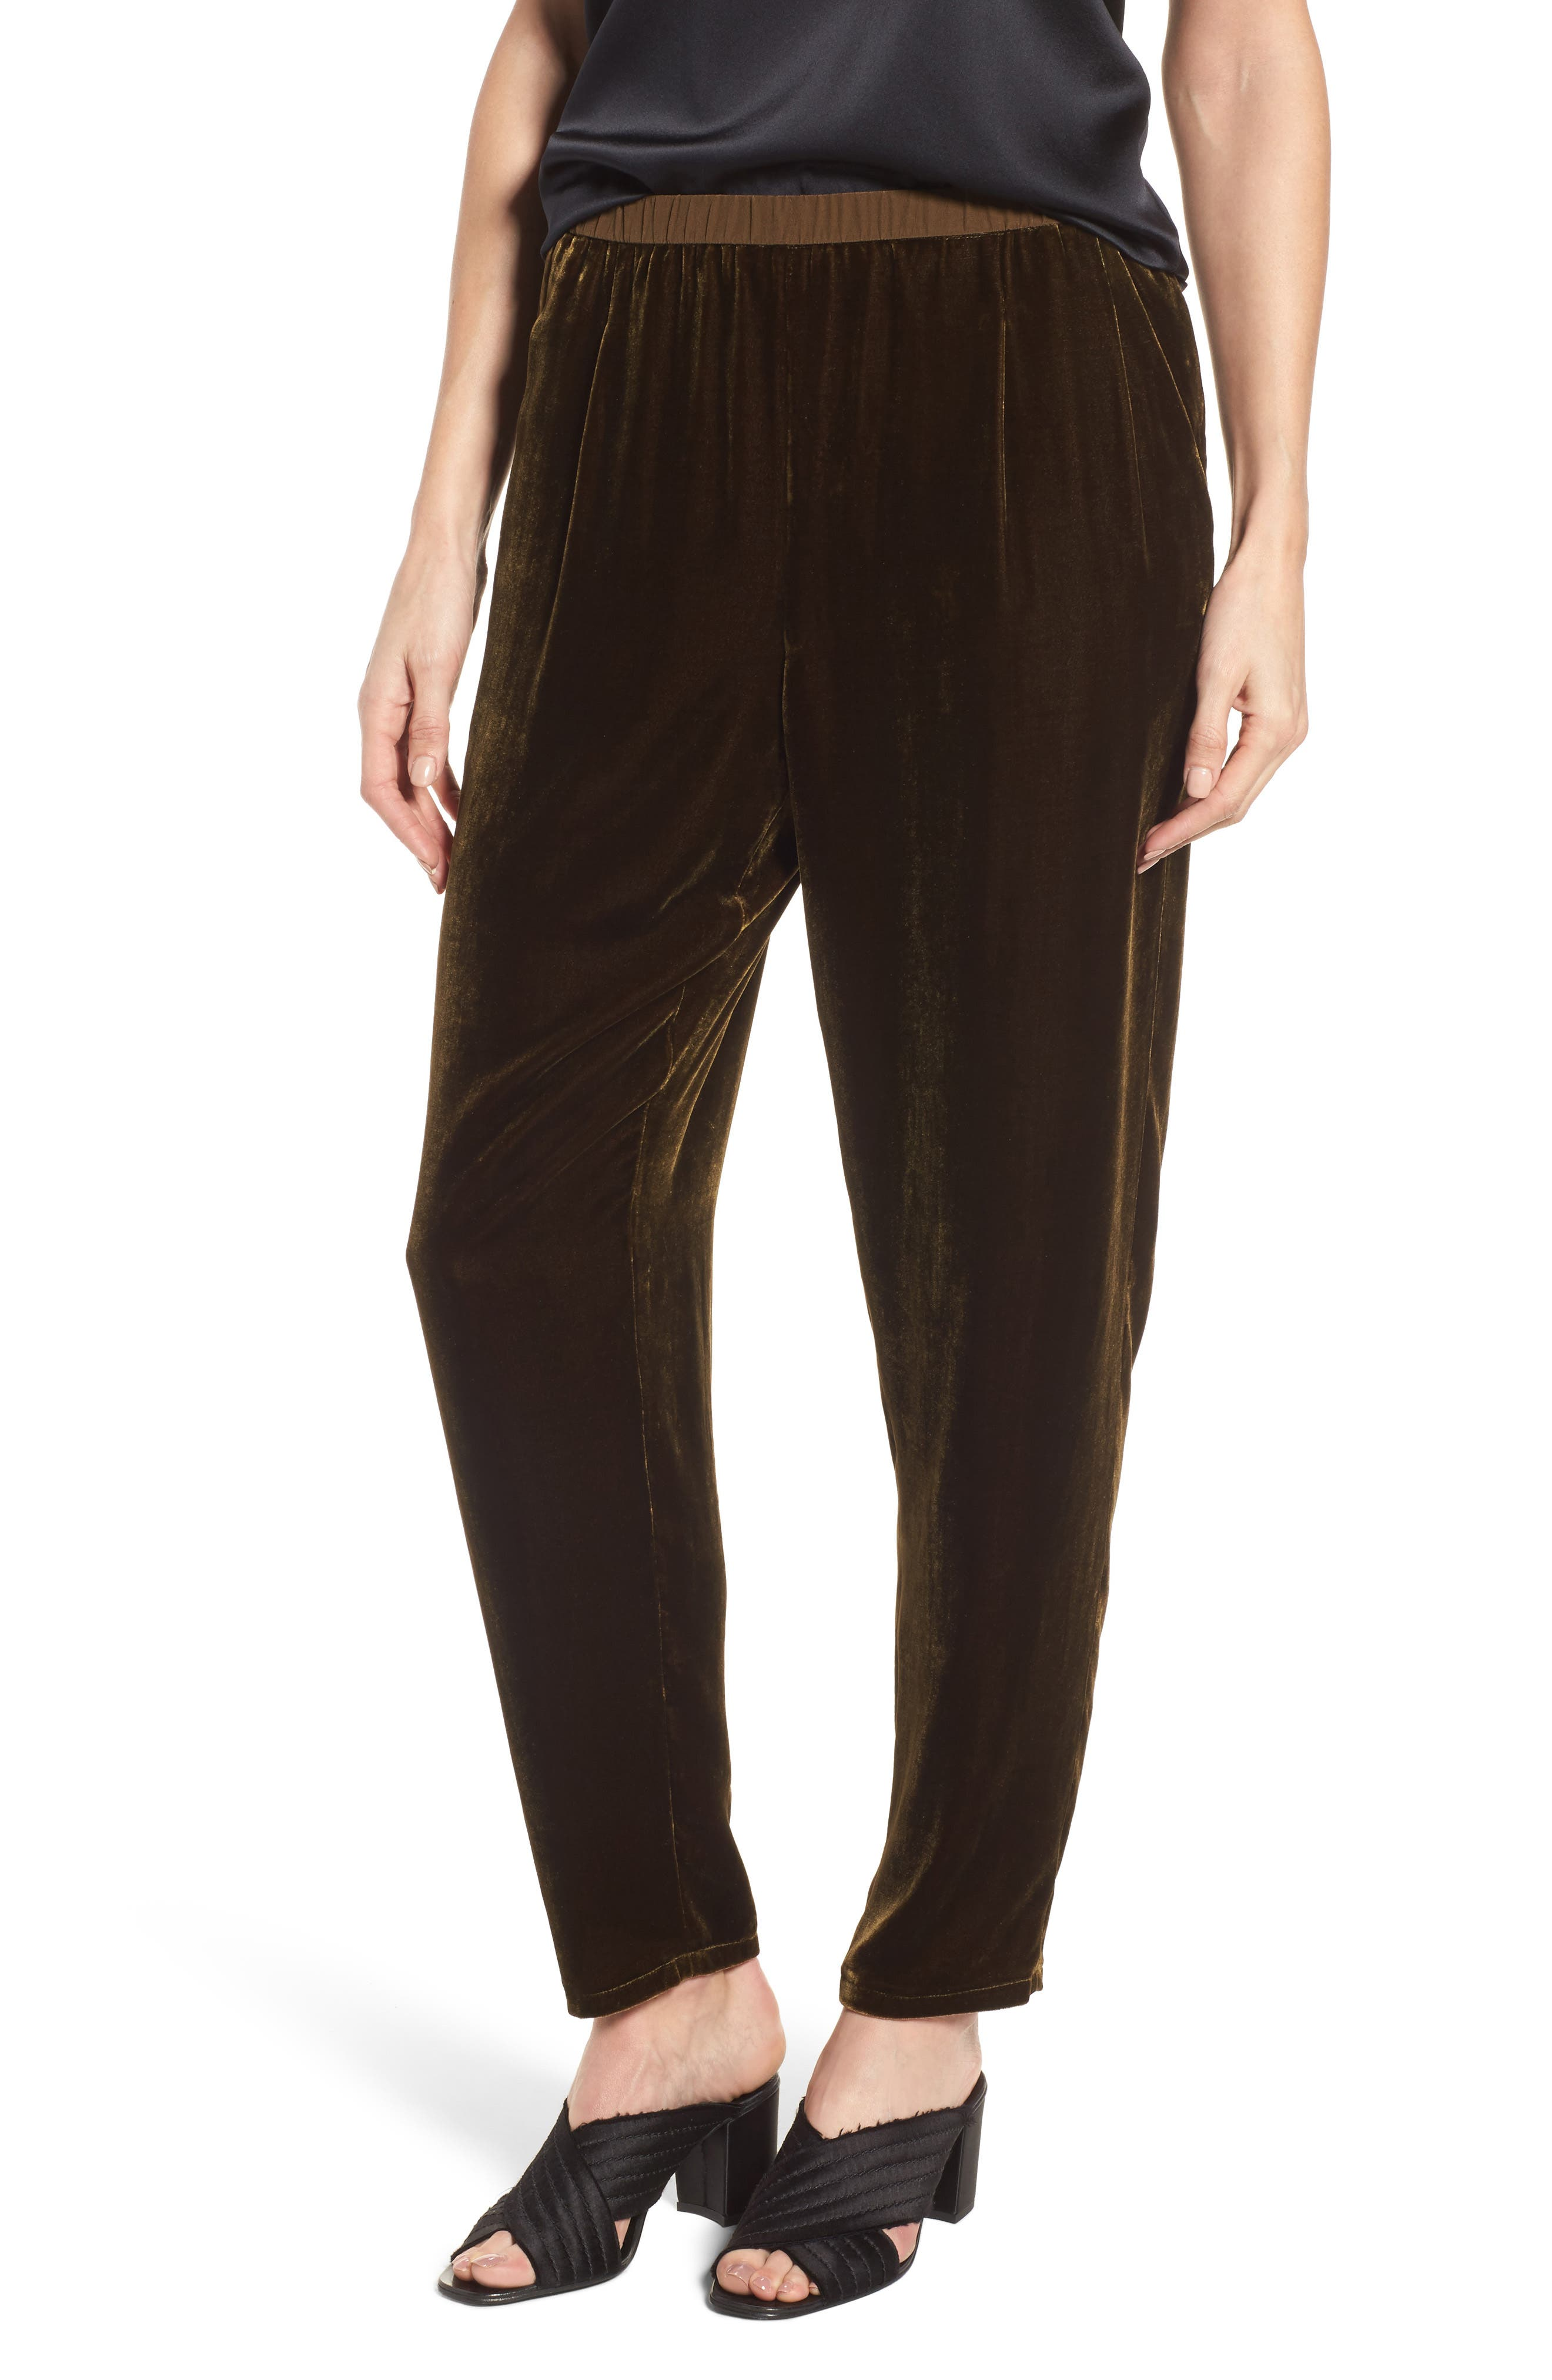 Alternate Image 1 Selected - Eileen Fisher Velvet Ankle Pants (Regular & Petite)